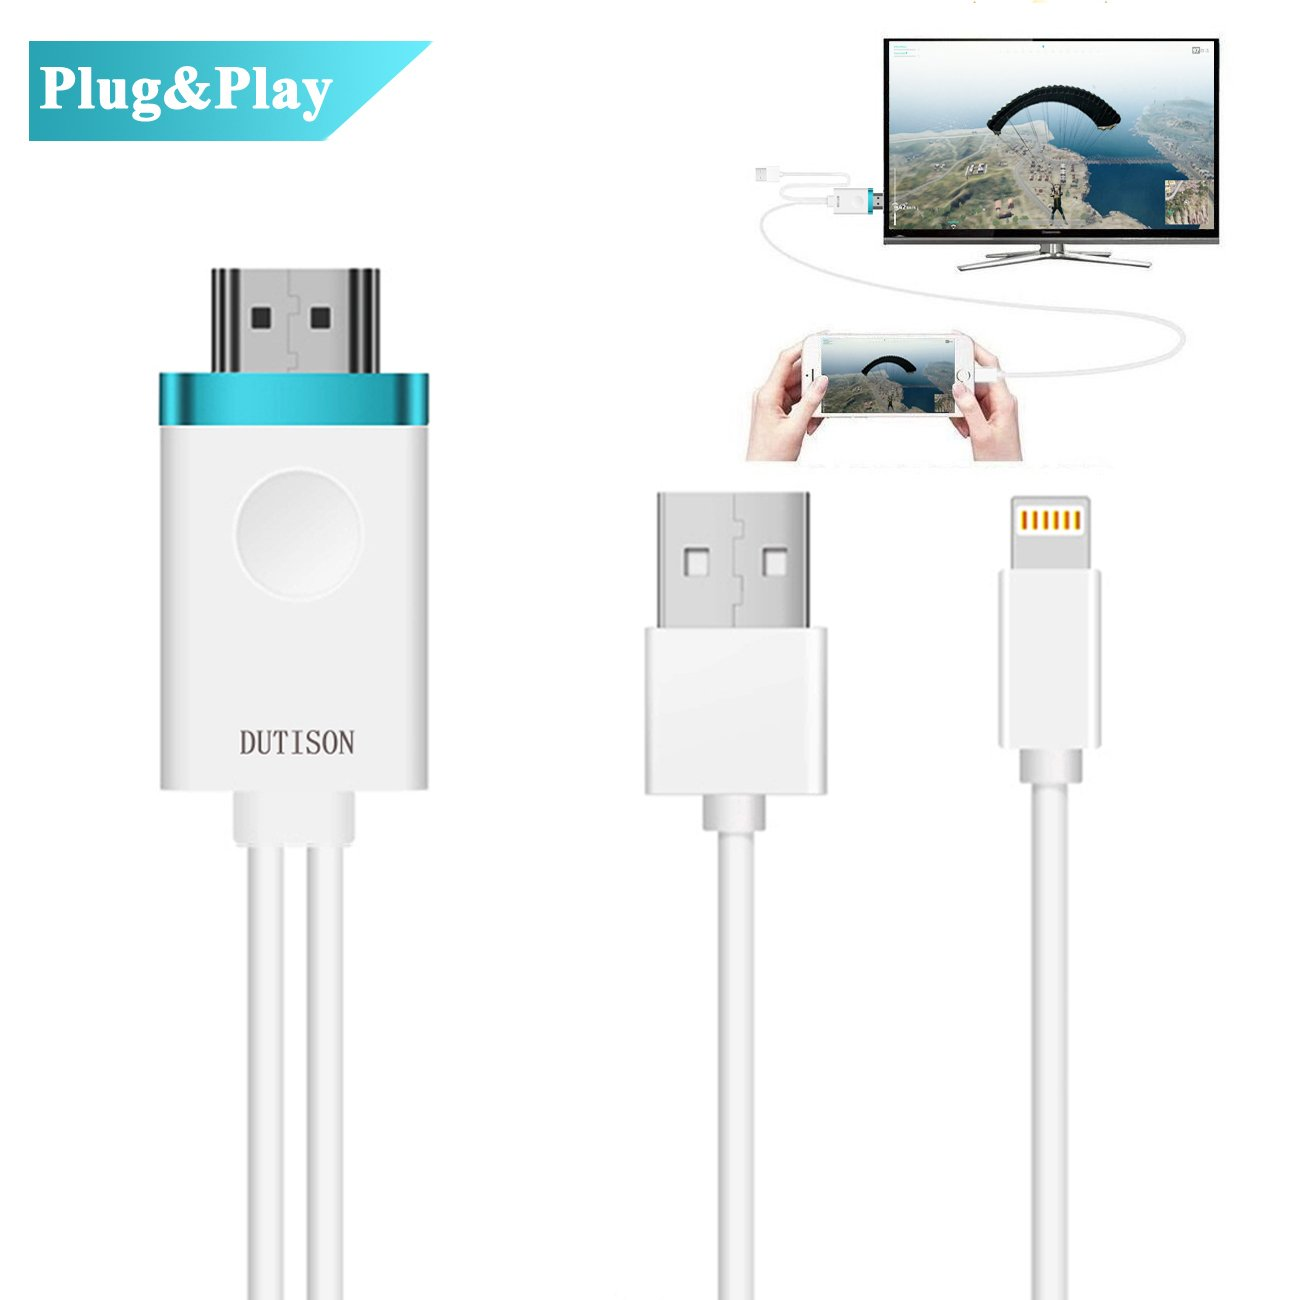 DUTISON IPhone to TV Cable, Iphone to HDMI Adapter Digital AV to 1080P HDTV Cord Converter for iPhone X/8/8+/7/7+/6/6+/5S HDMI Connector Dongle for iPad iPod Pro Air Mini Plug and Play- 6ft